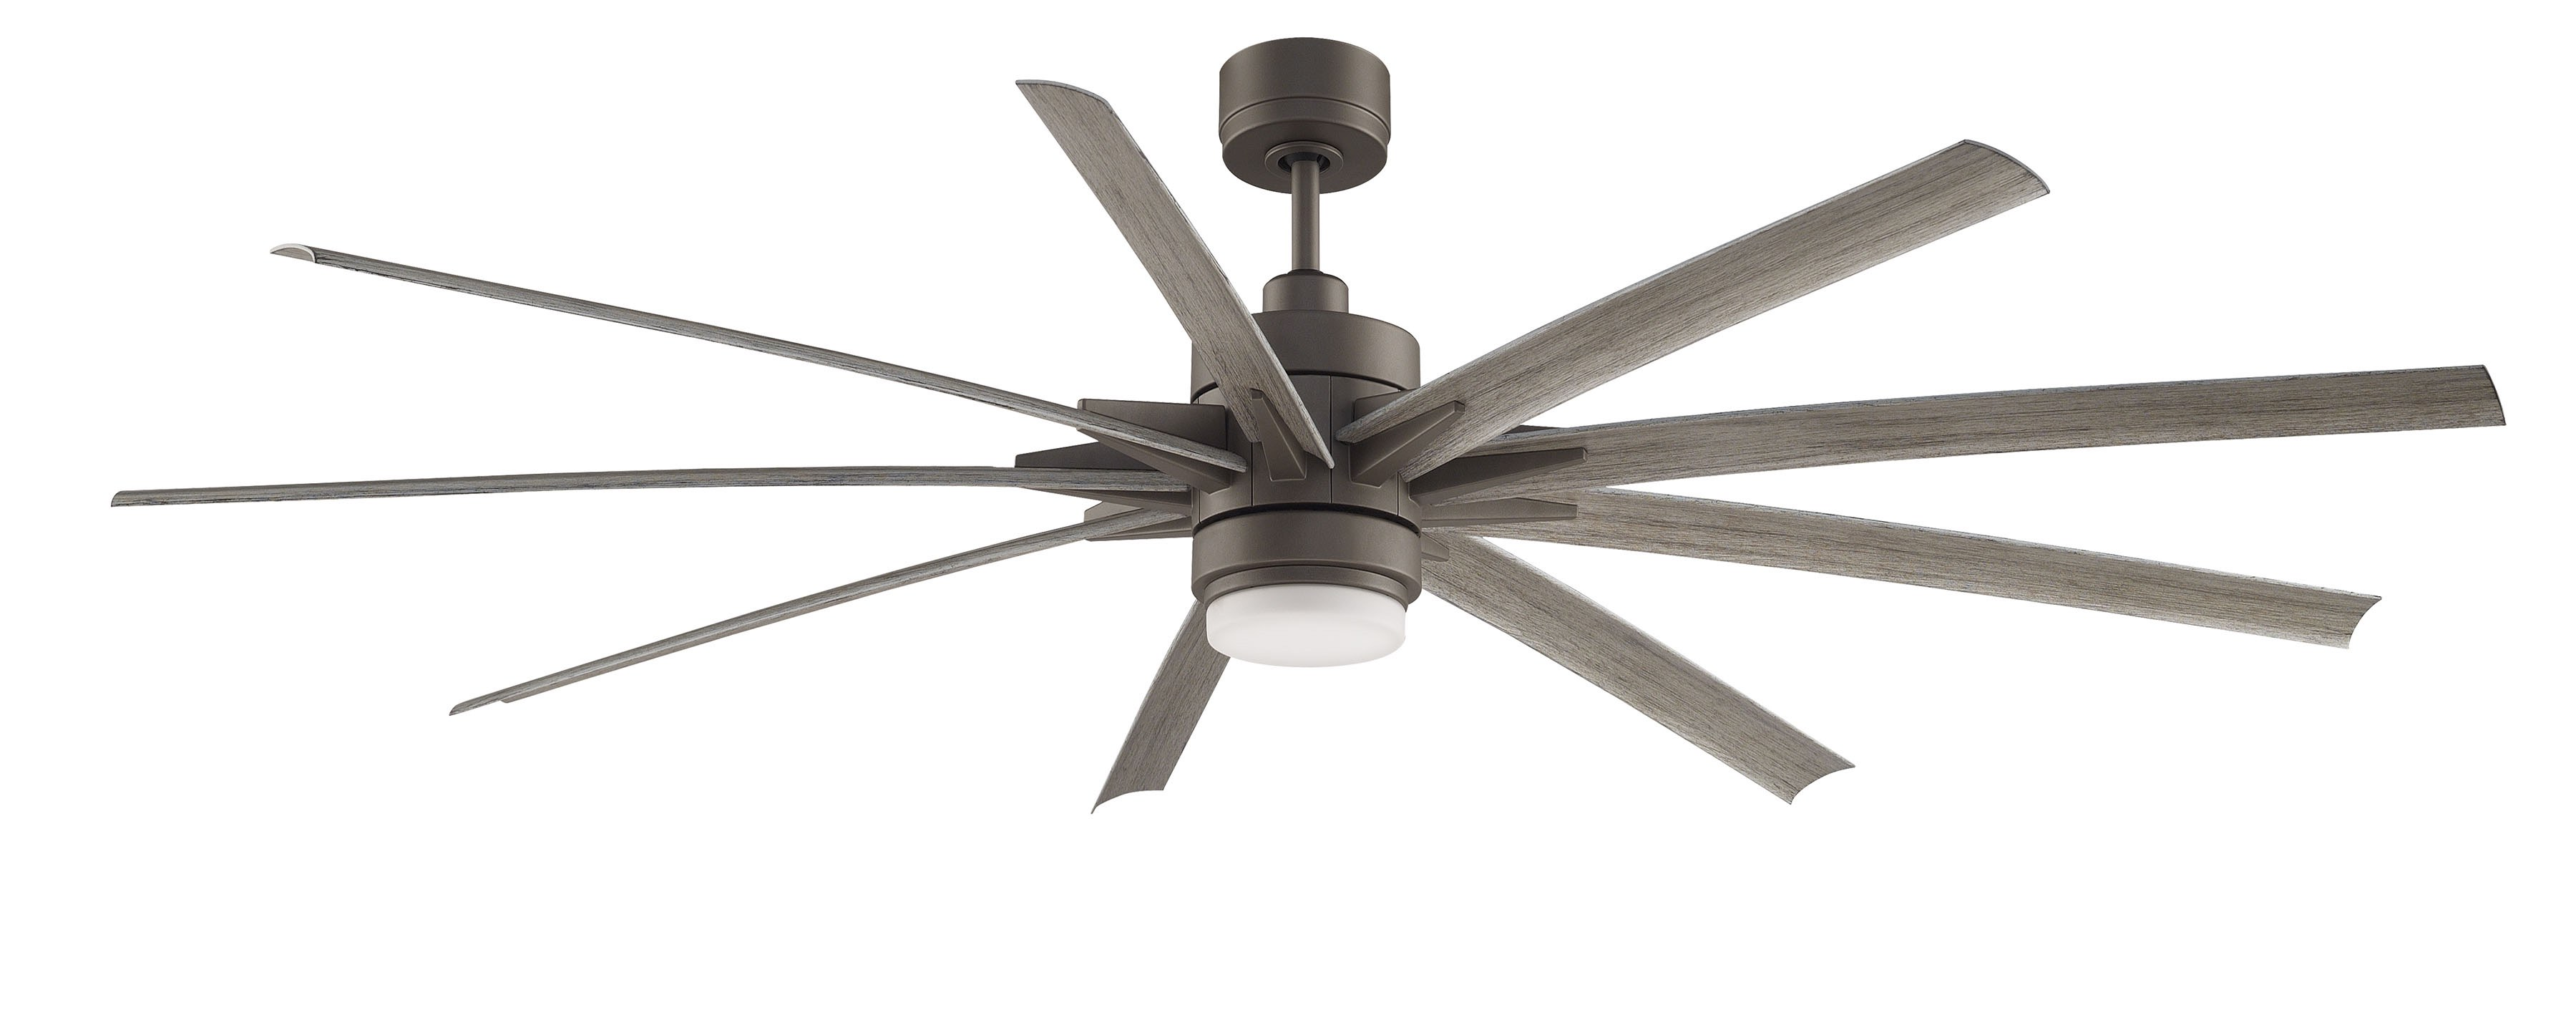 ceiling lights com lighting kichler indoor light with barrington at lowes downrod pl distressed black in fan mount accessories inch shop and fans wood